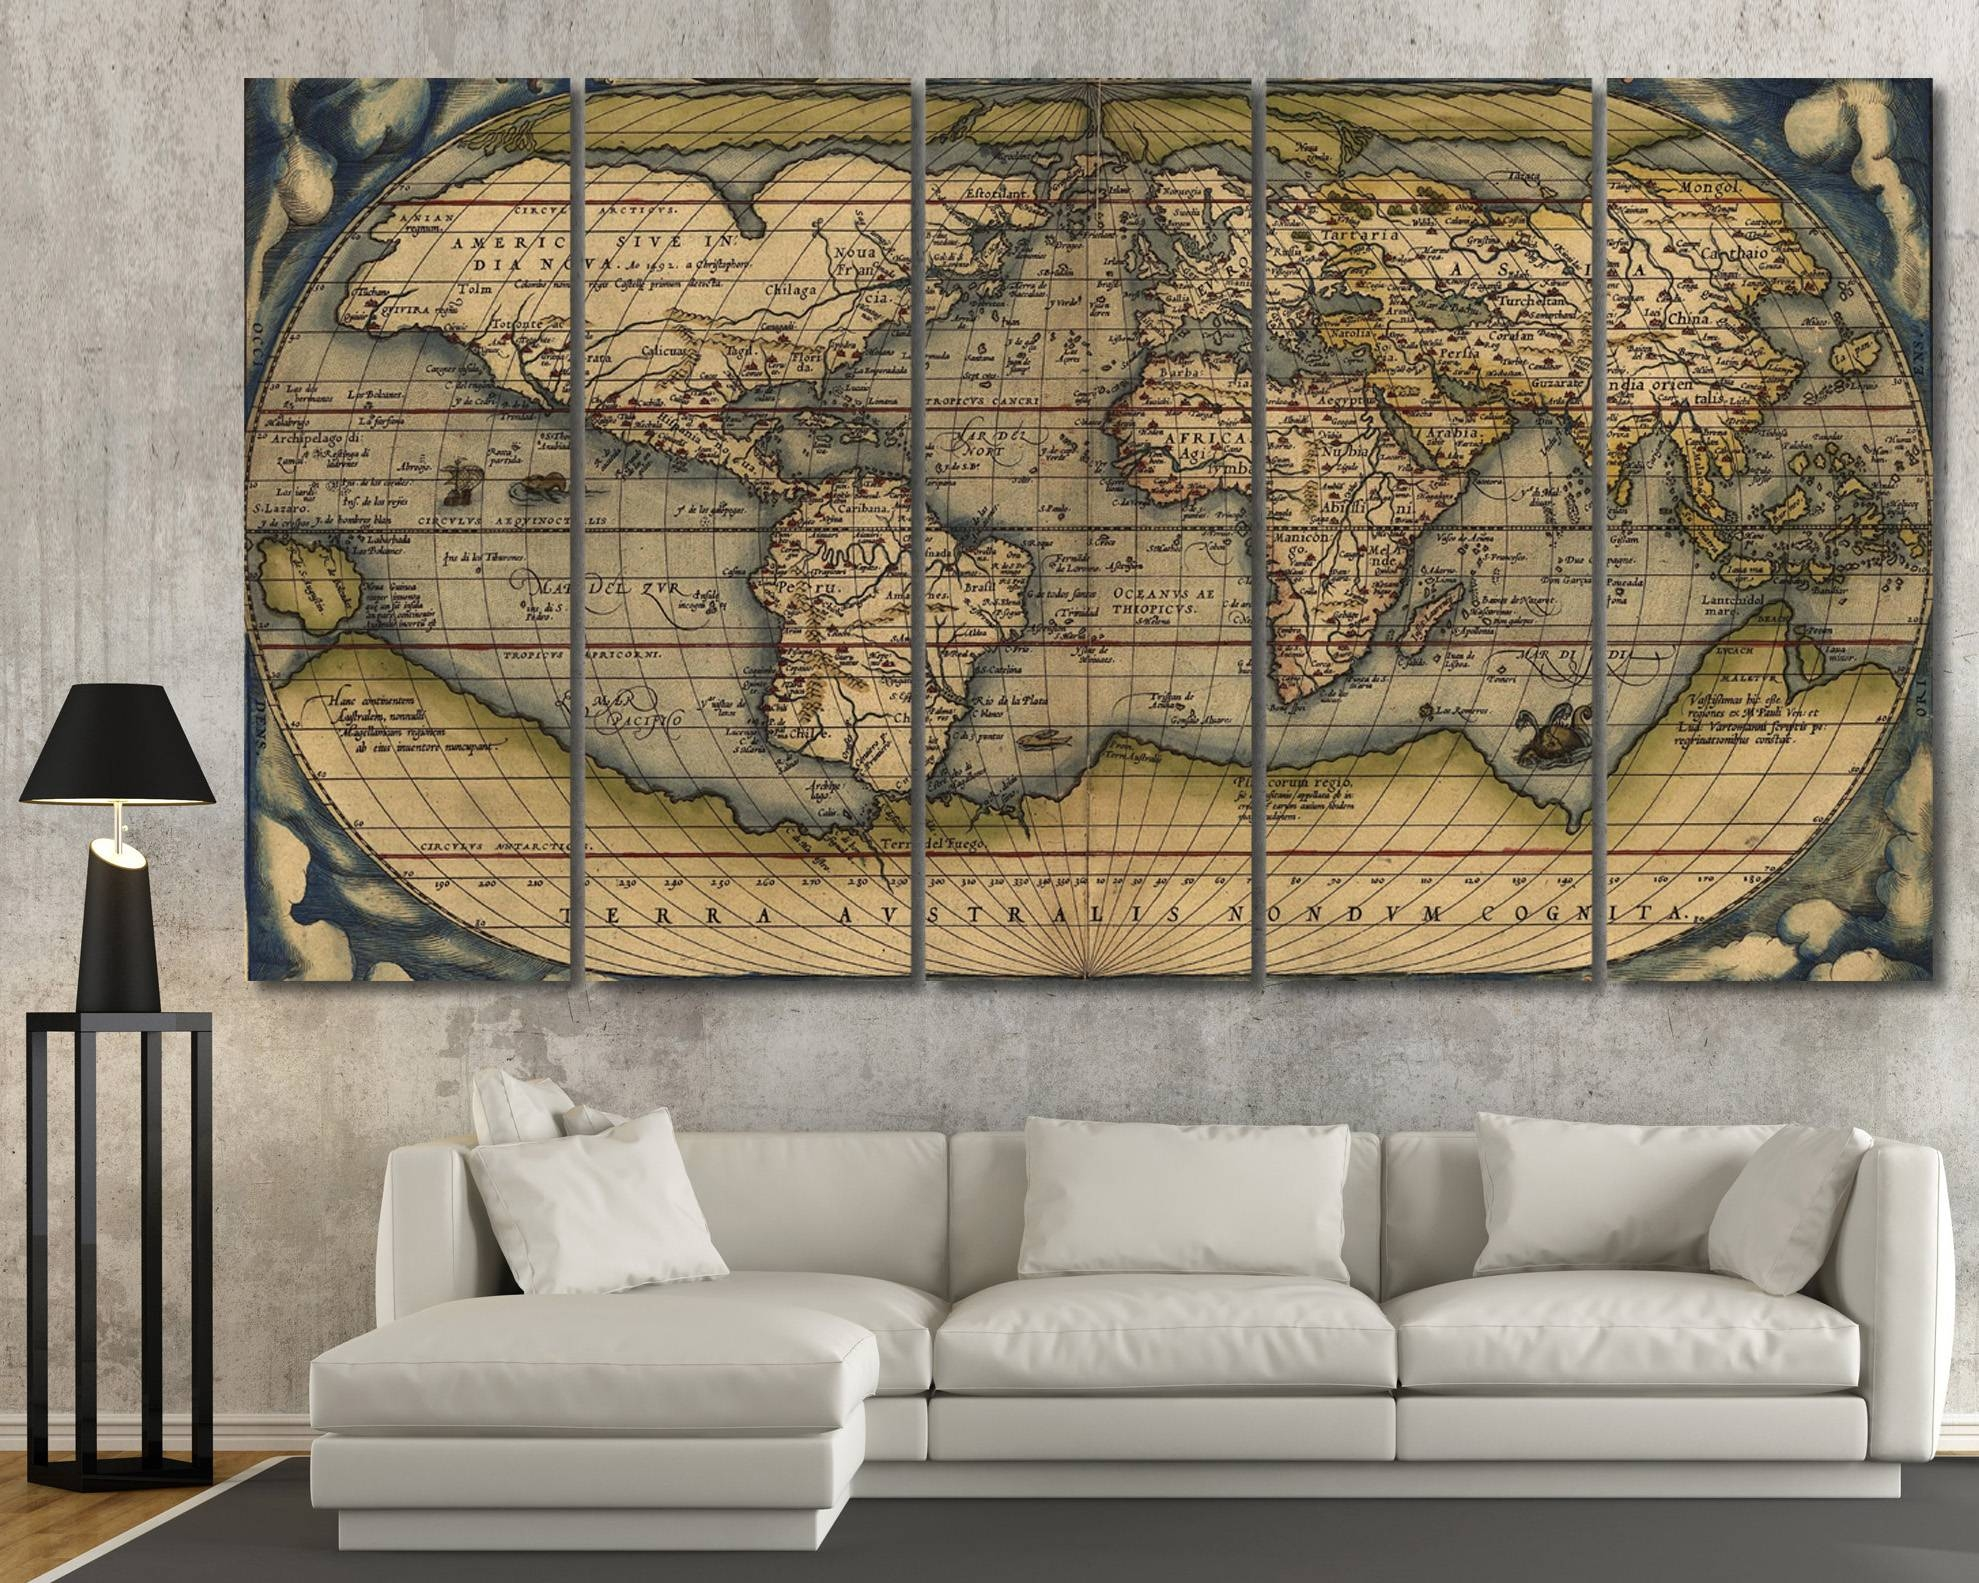 Large Vintage Wall Art Old World Map At Texelprintart Intended For Recent Old World Map Wall Art (View 5 of 20)